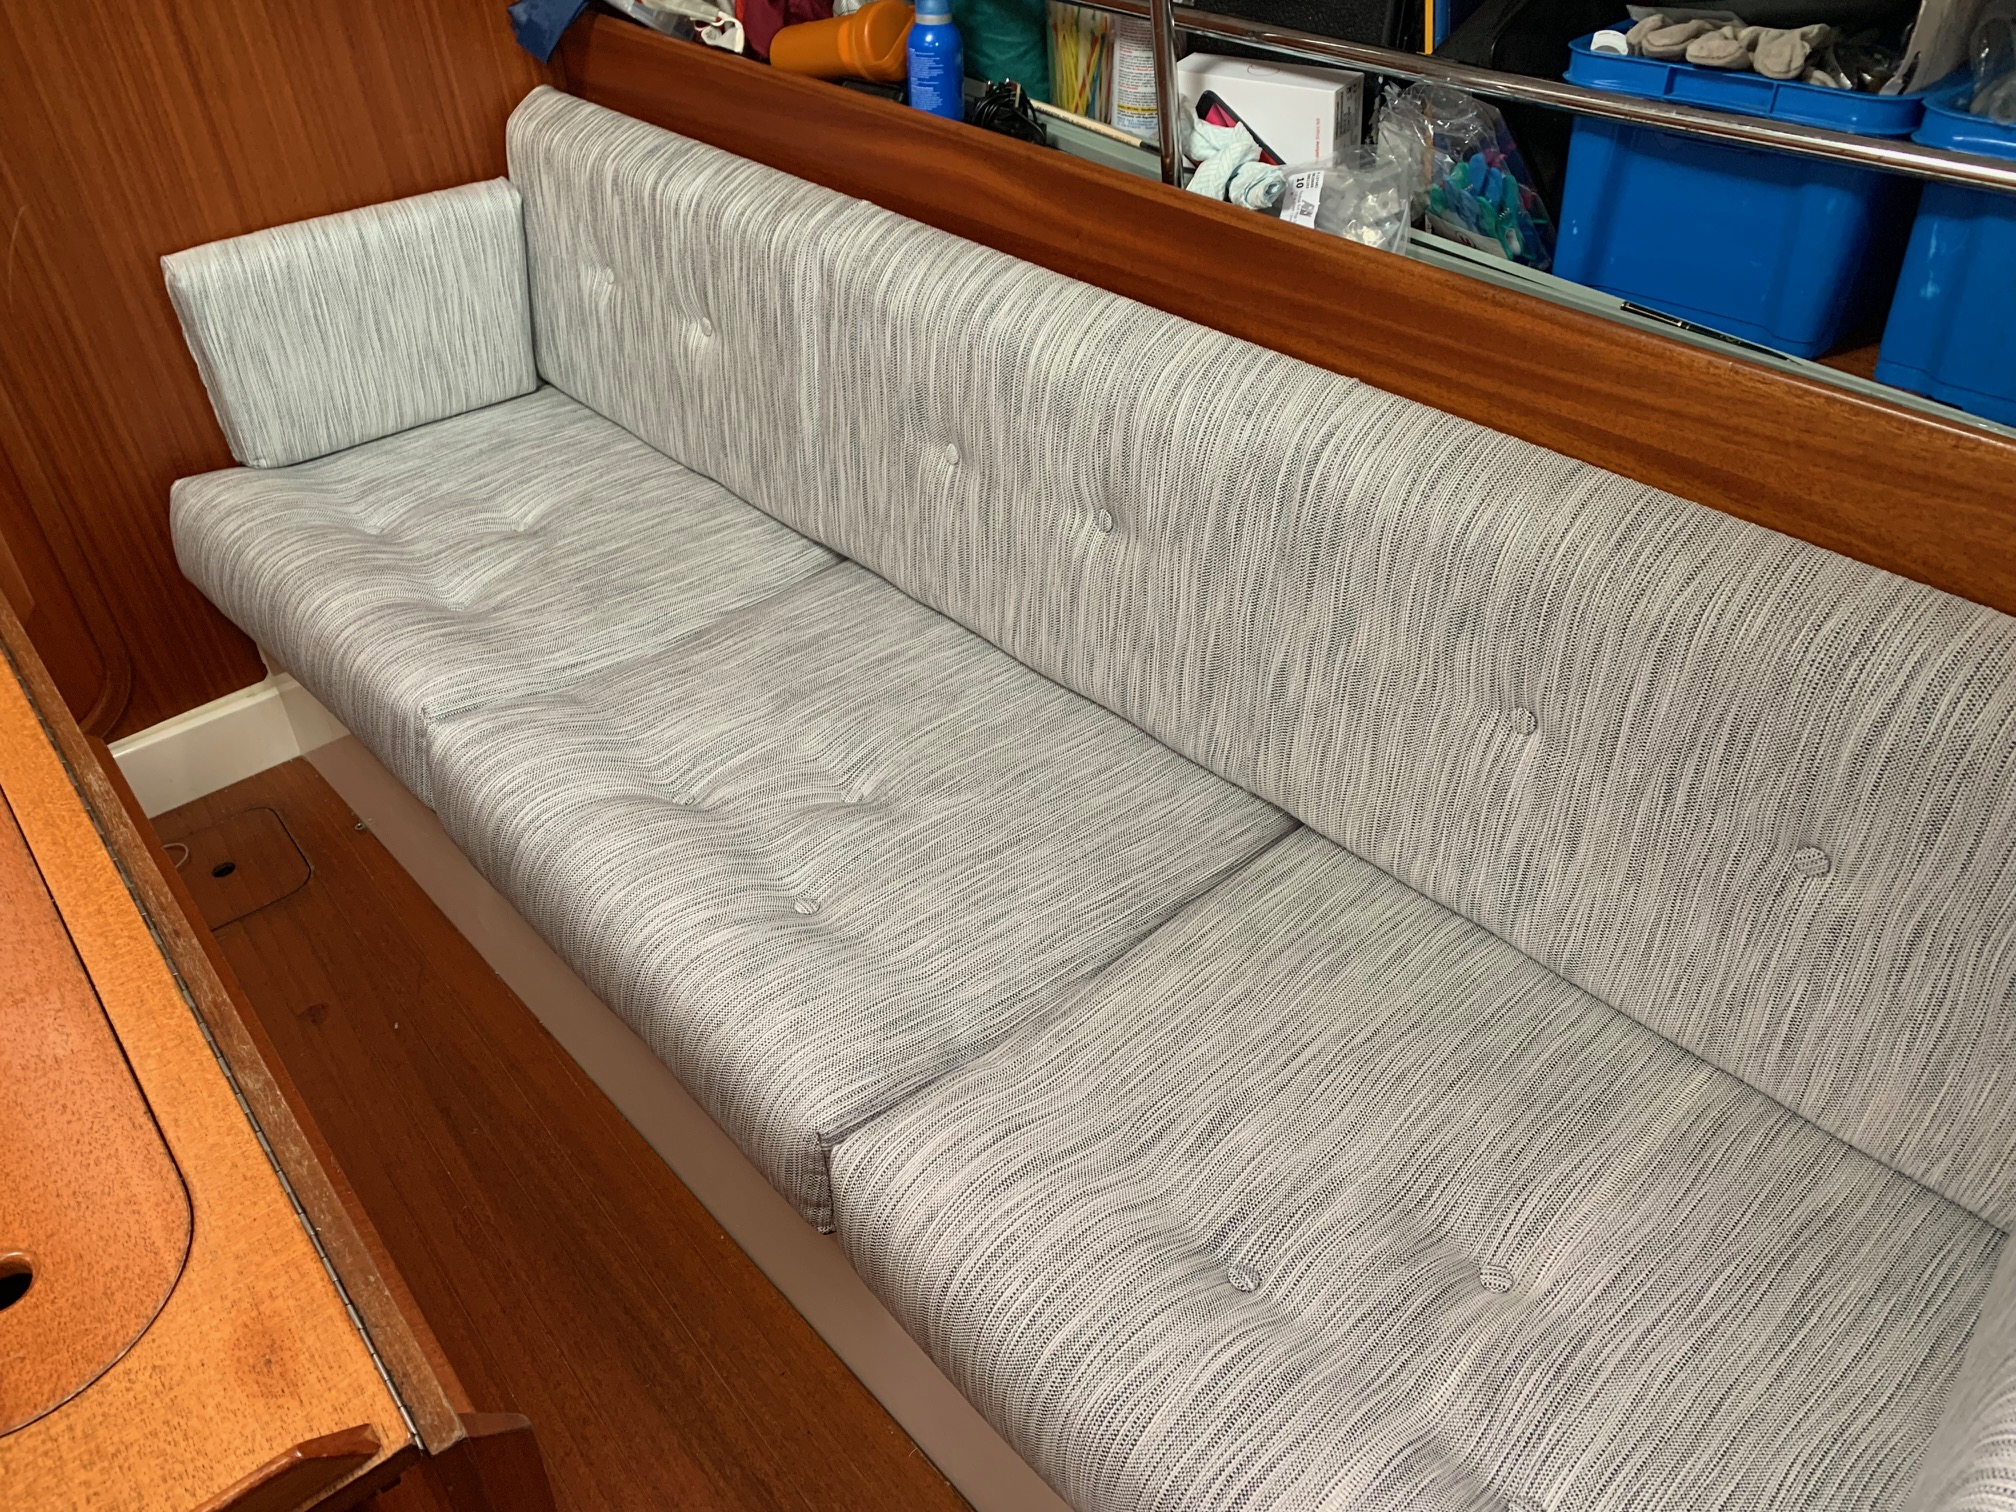 Marine Bedding Boat Upholstery - Saloon Seating 4